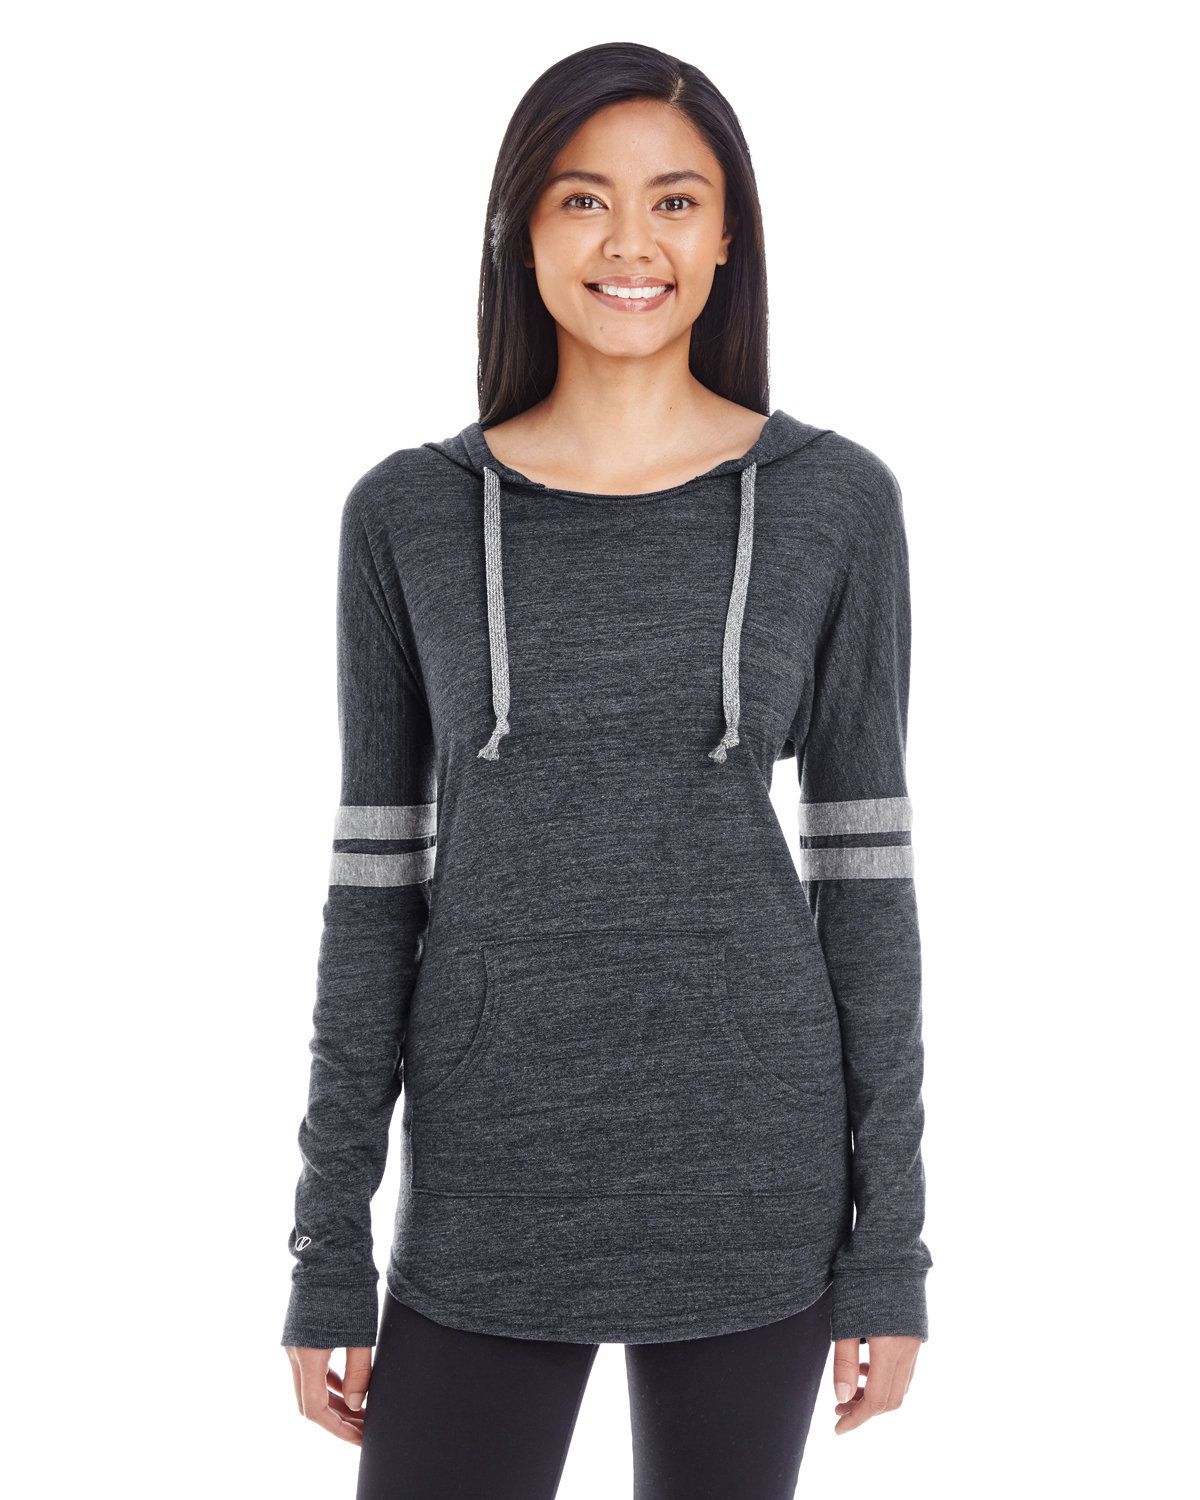 Holloway Ladies' Hooded Low Key Pullover VIN BLK/ VIN GRY